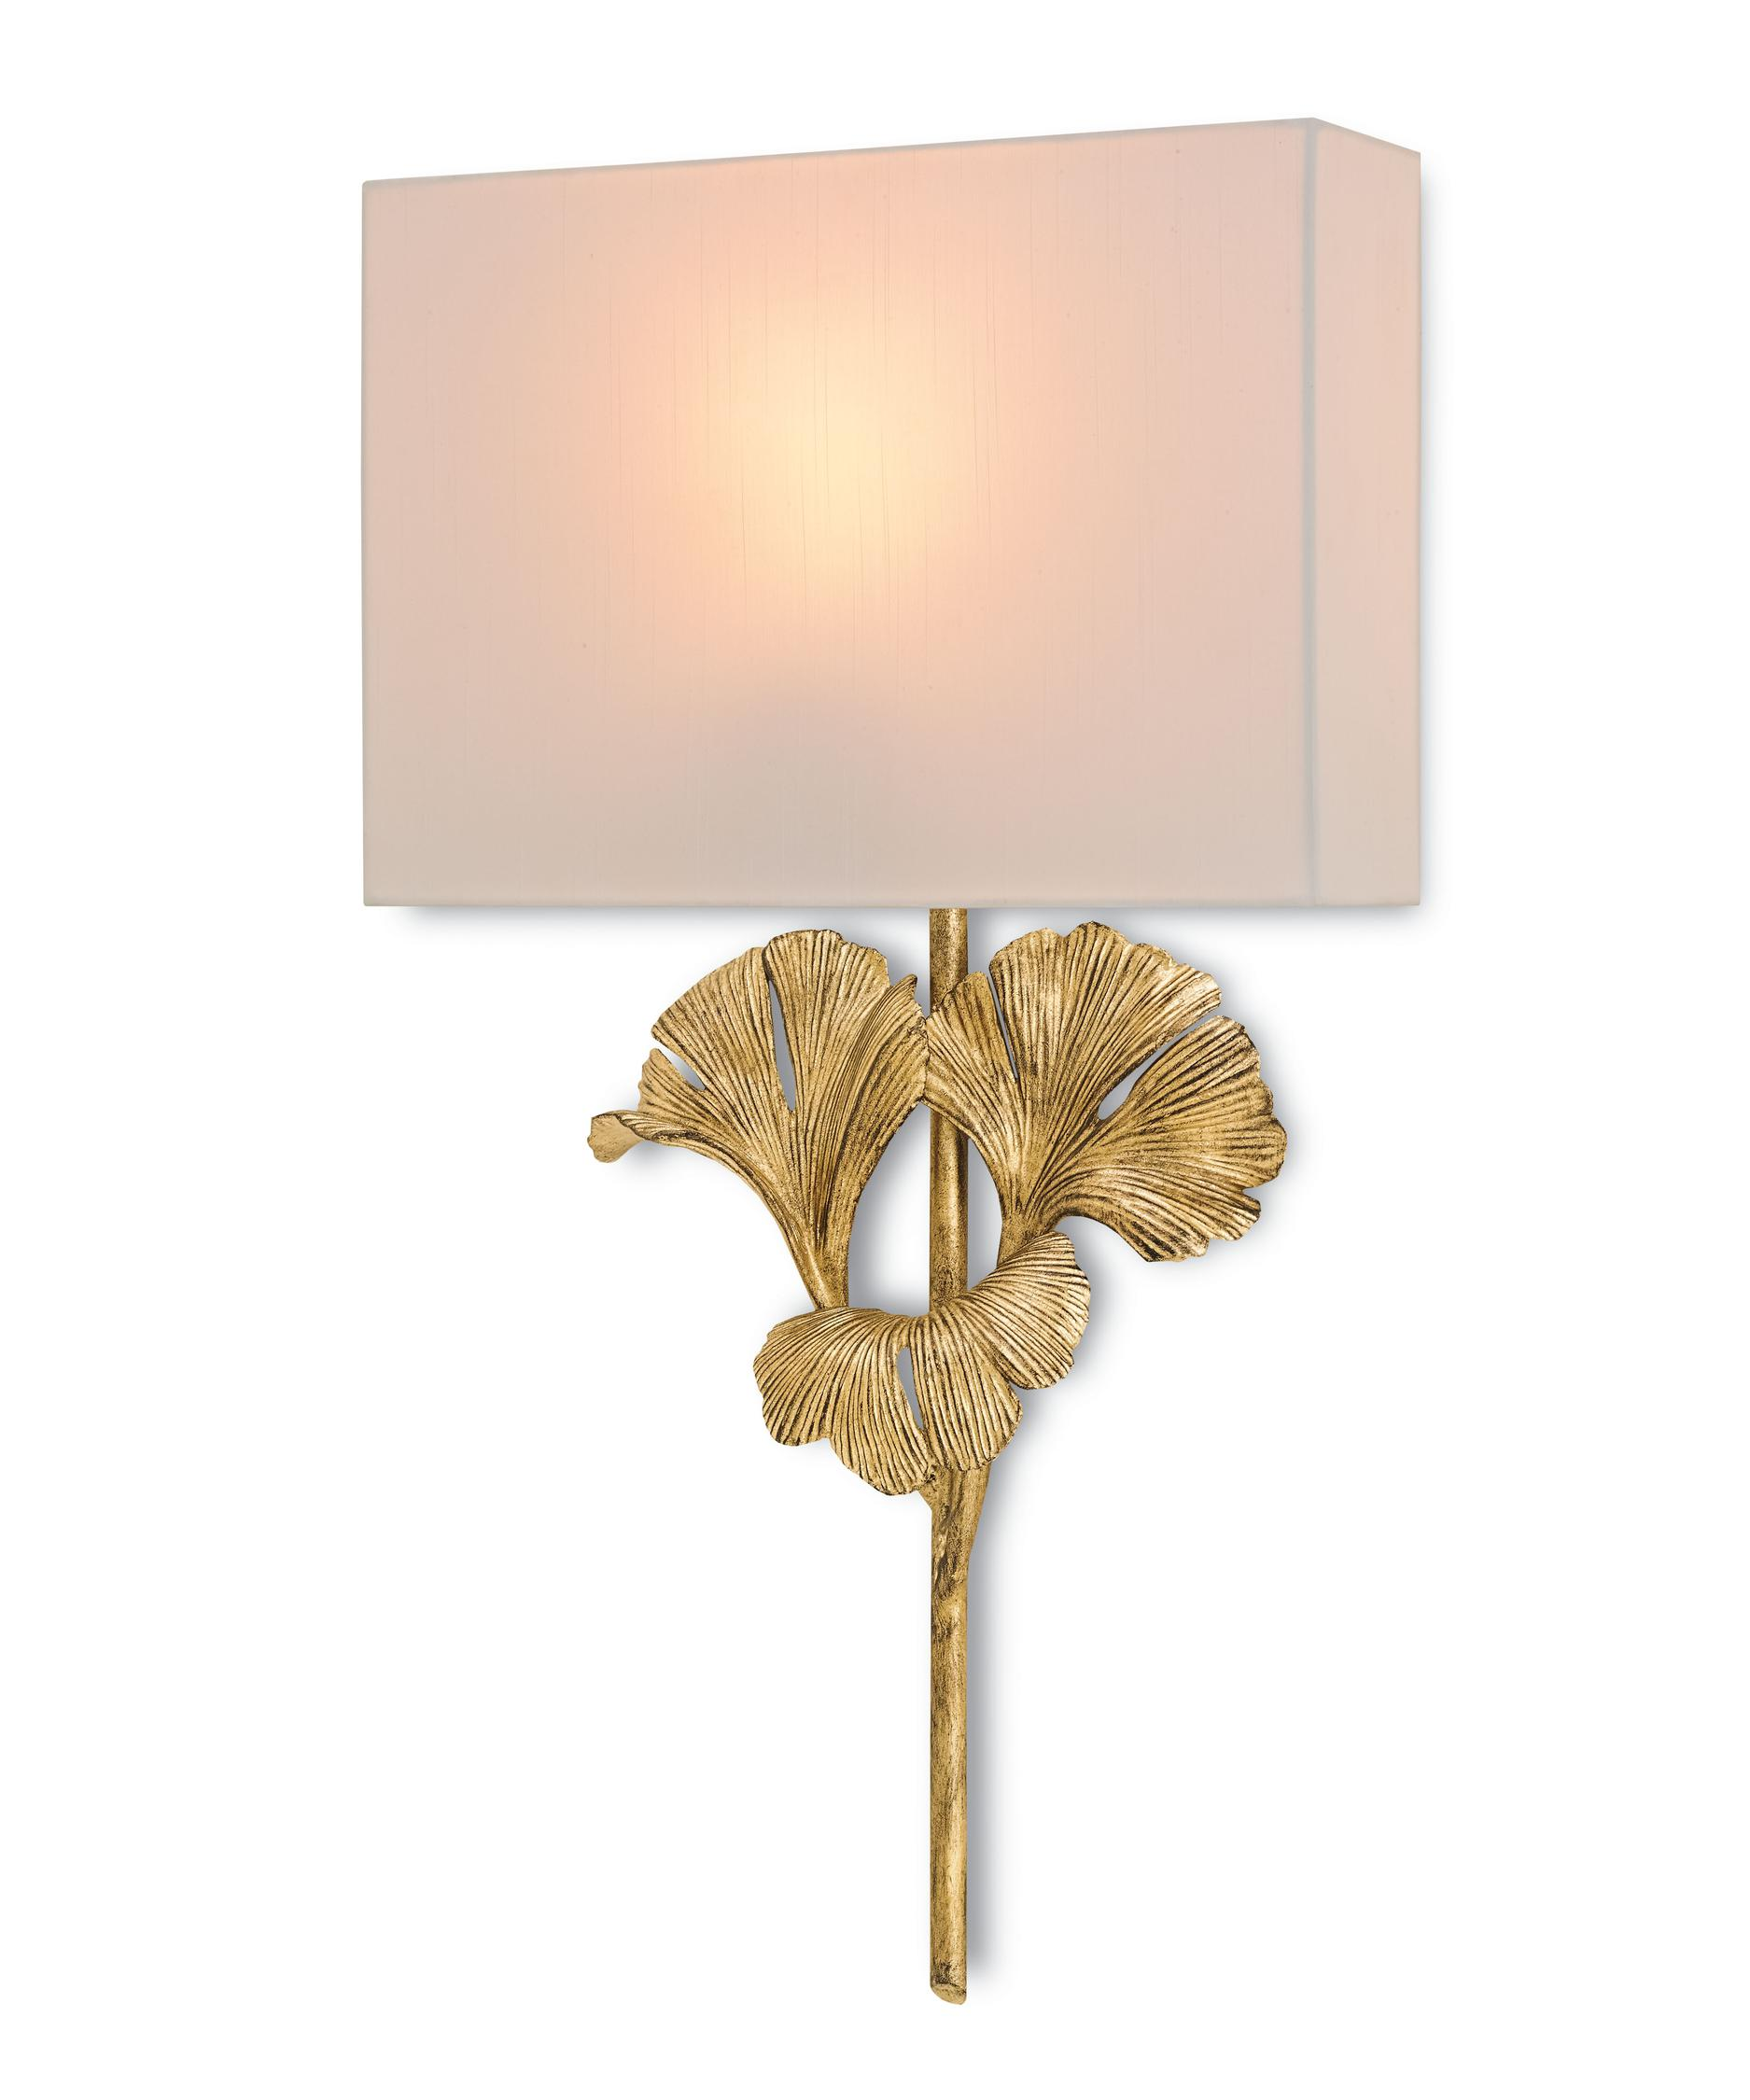 Shown in Chinois Antique Gold Leaf finish and Off White Shantung shade